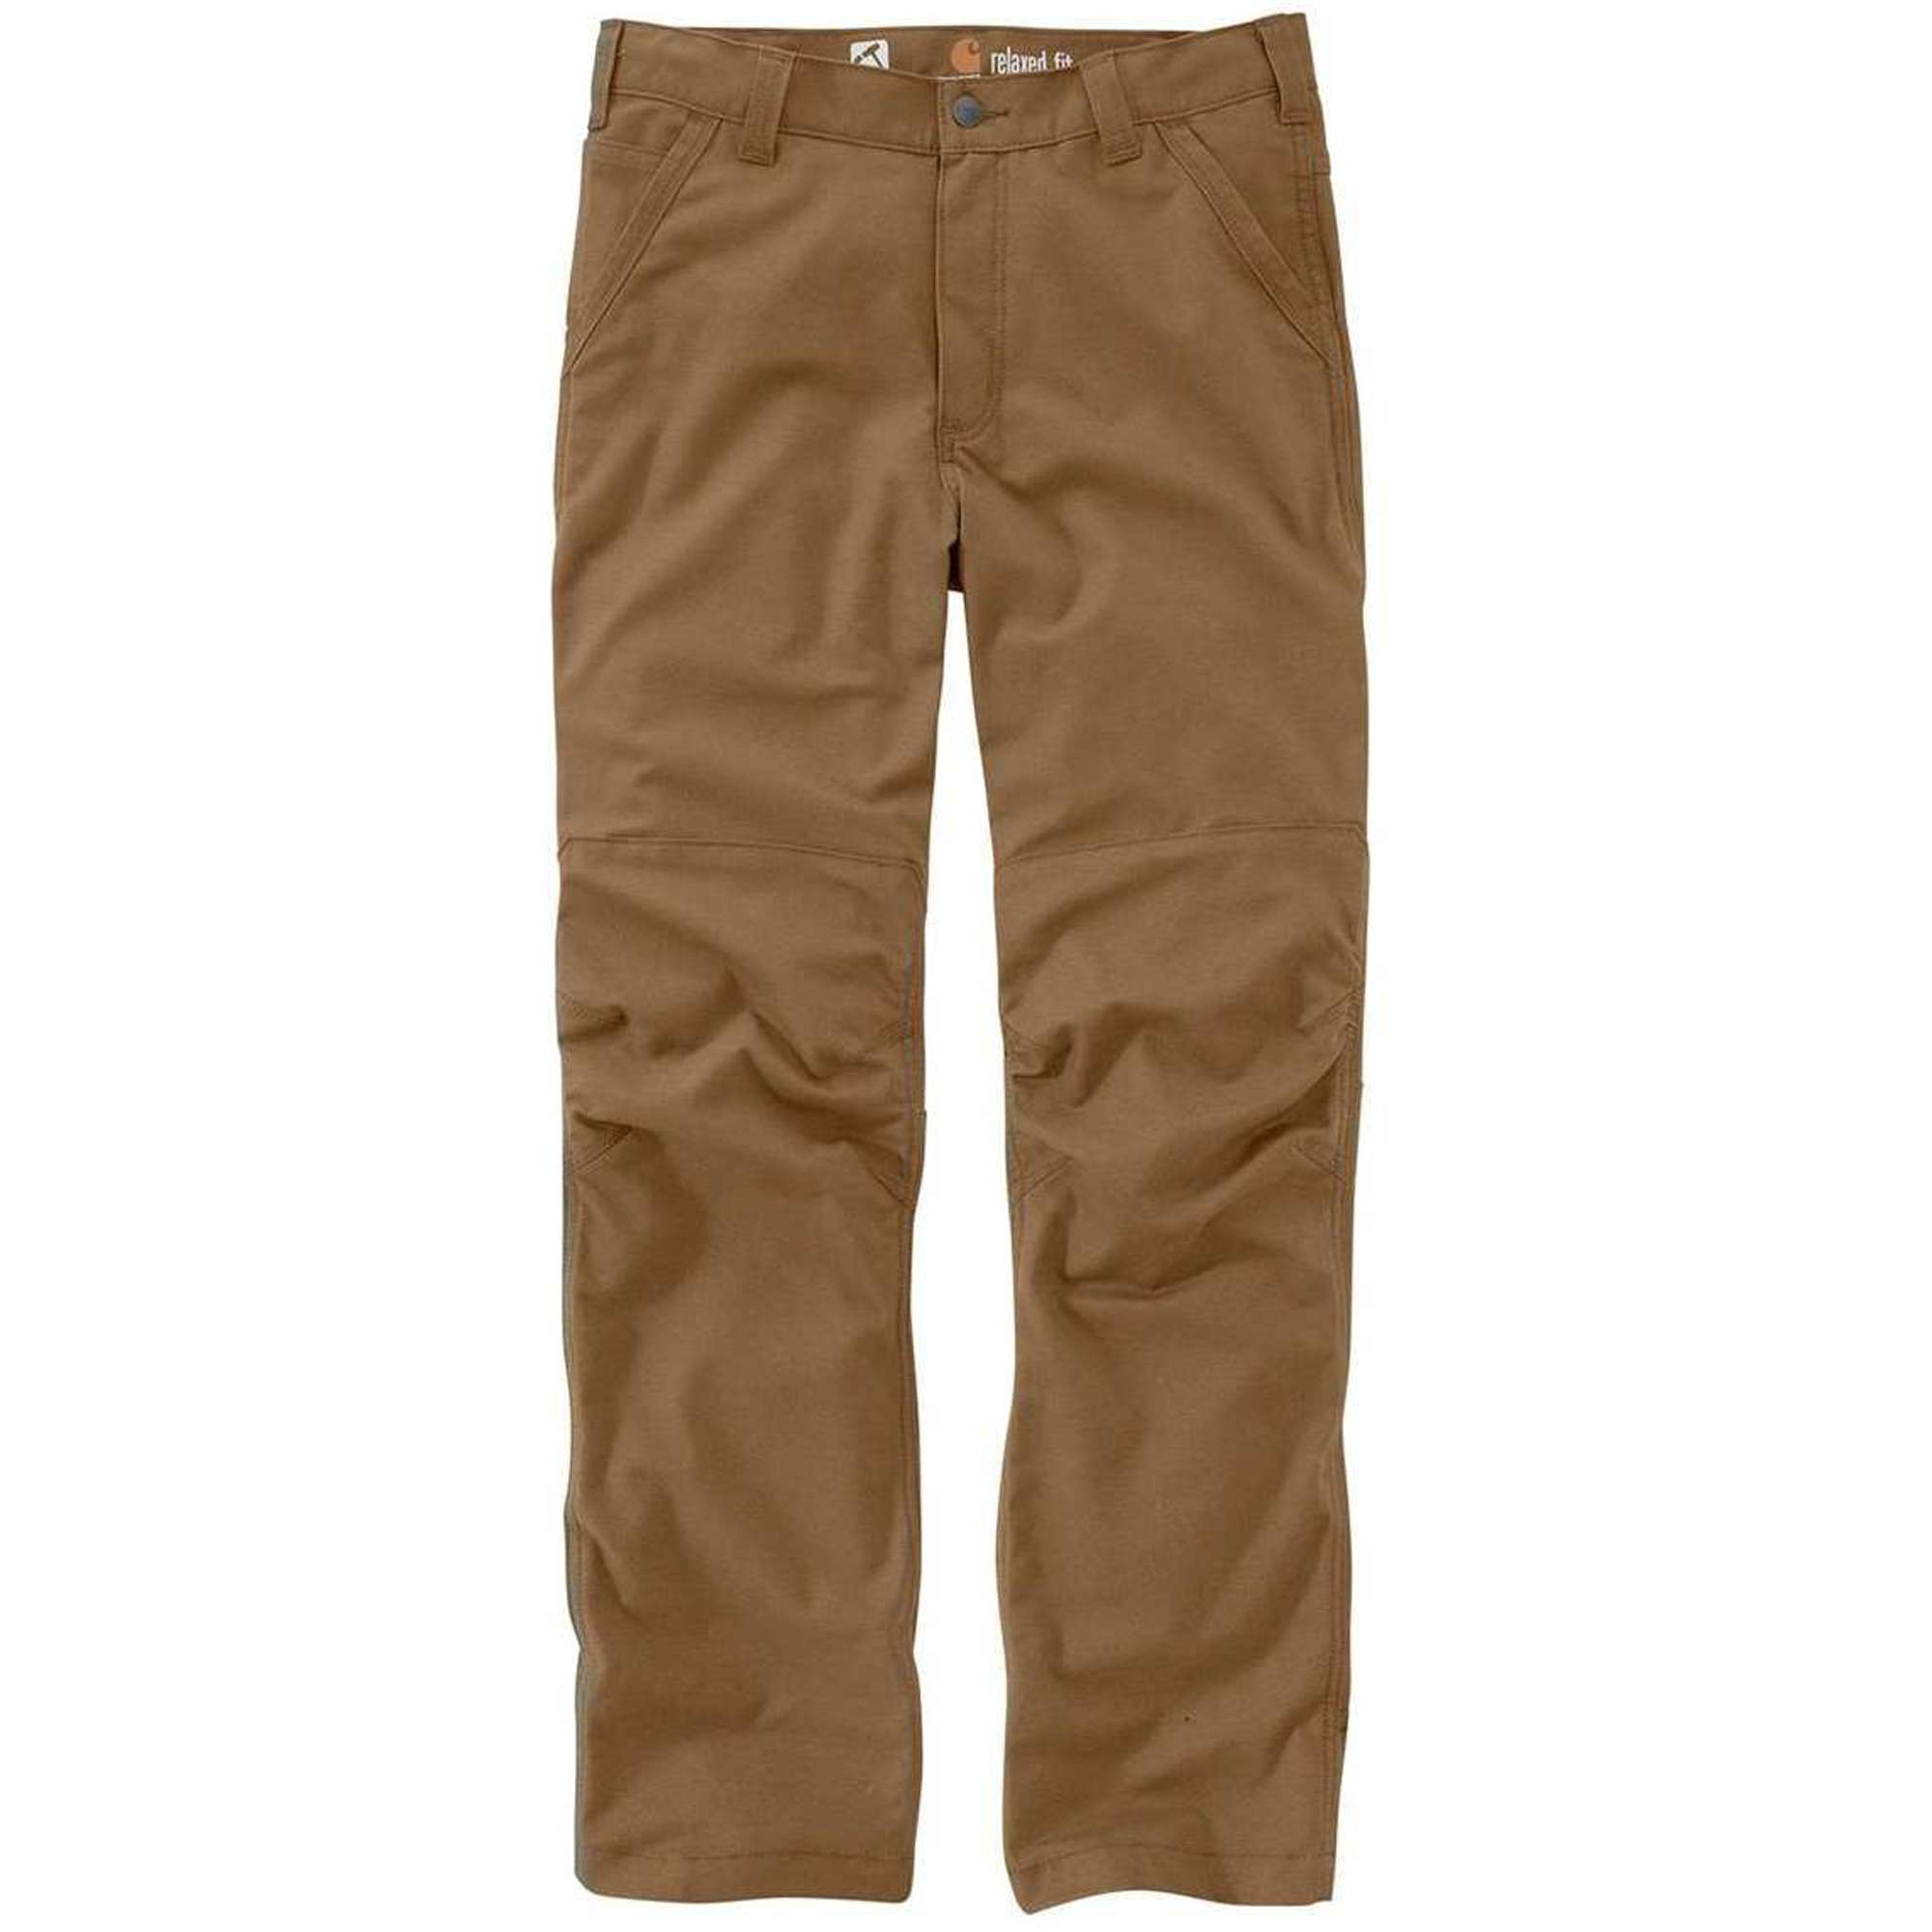 MEN'S FULL SWING® WATER-REPELLENT CRYDER WORK PANT 2.0